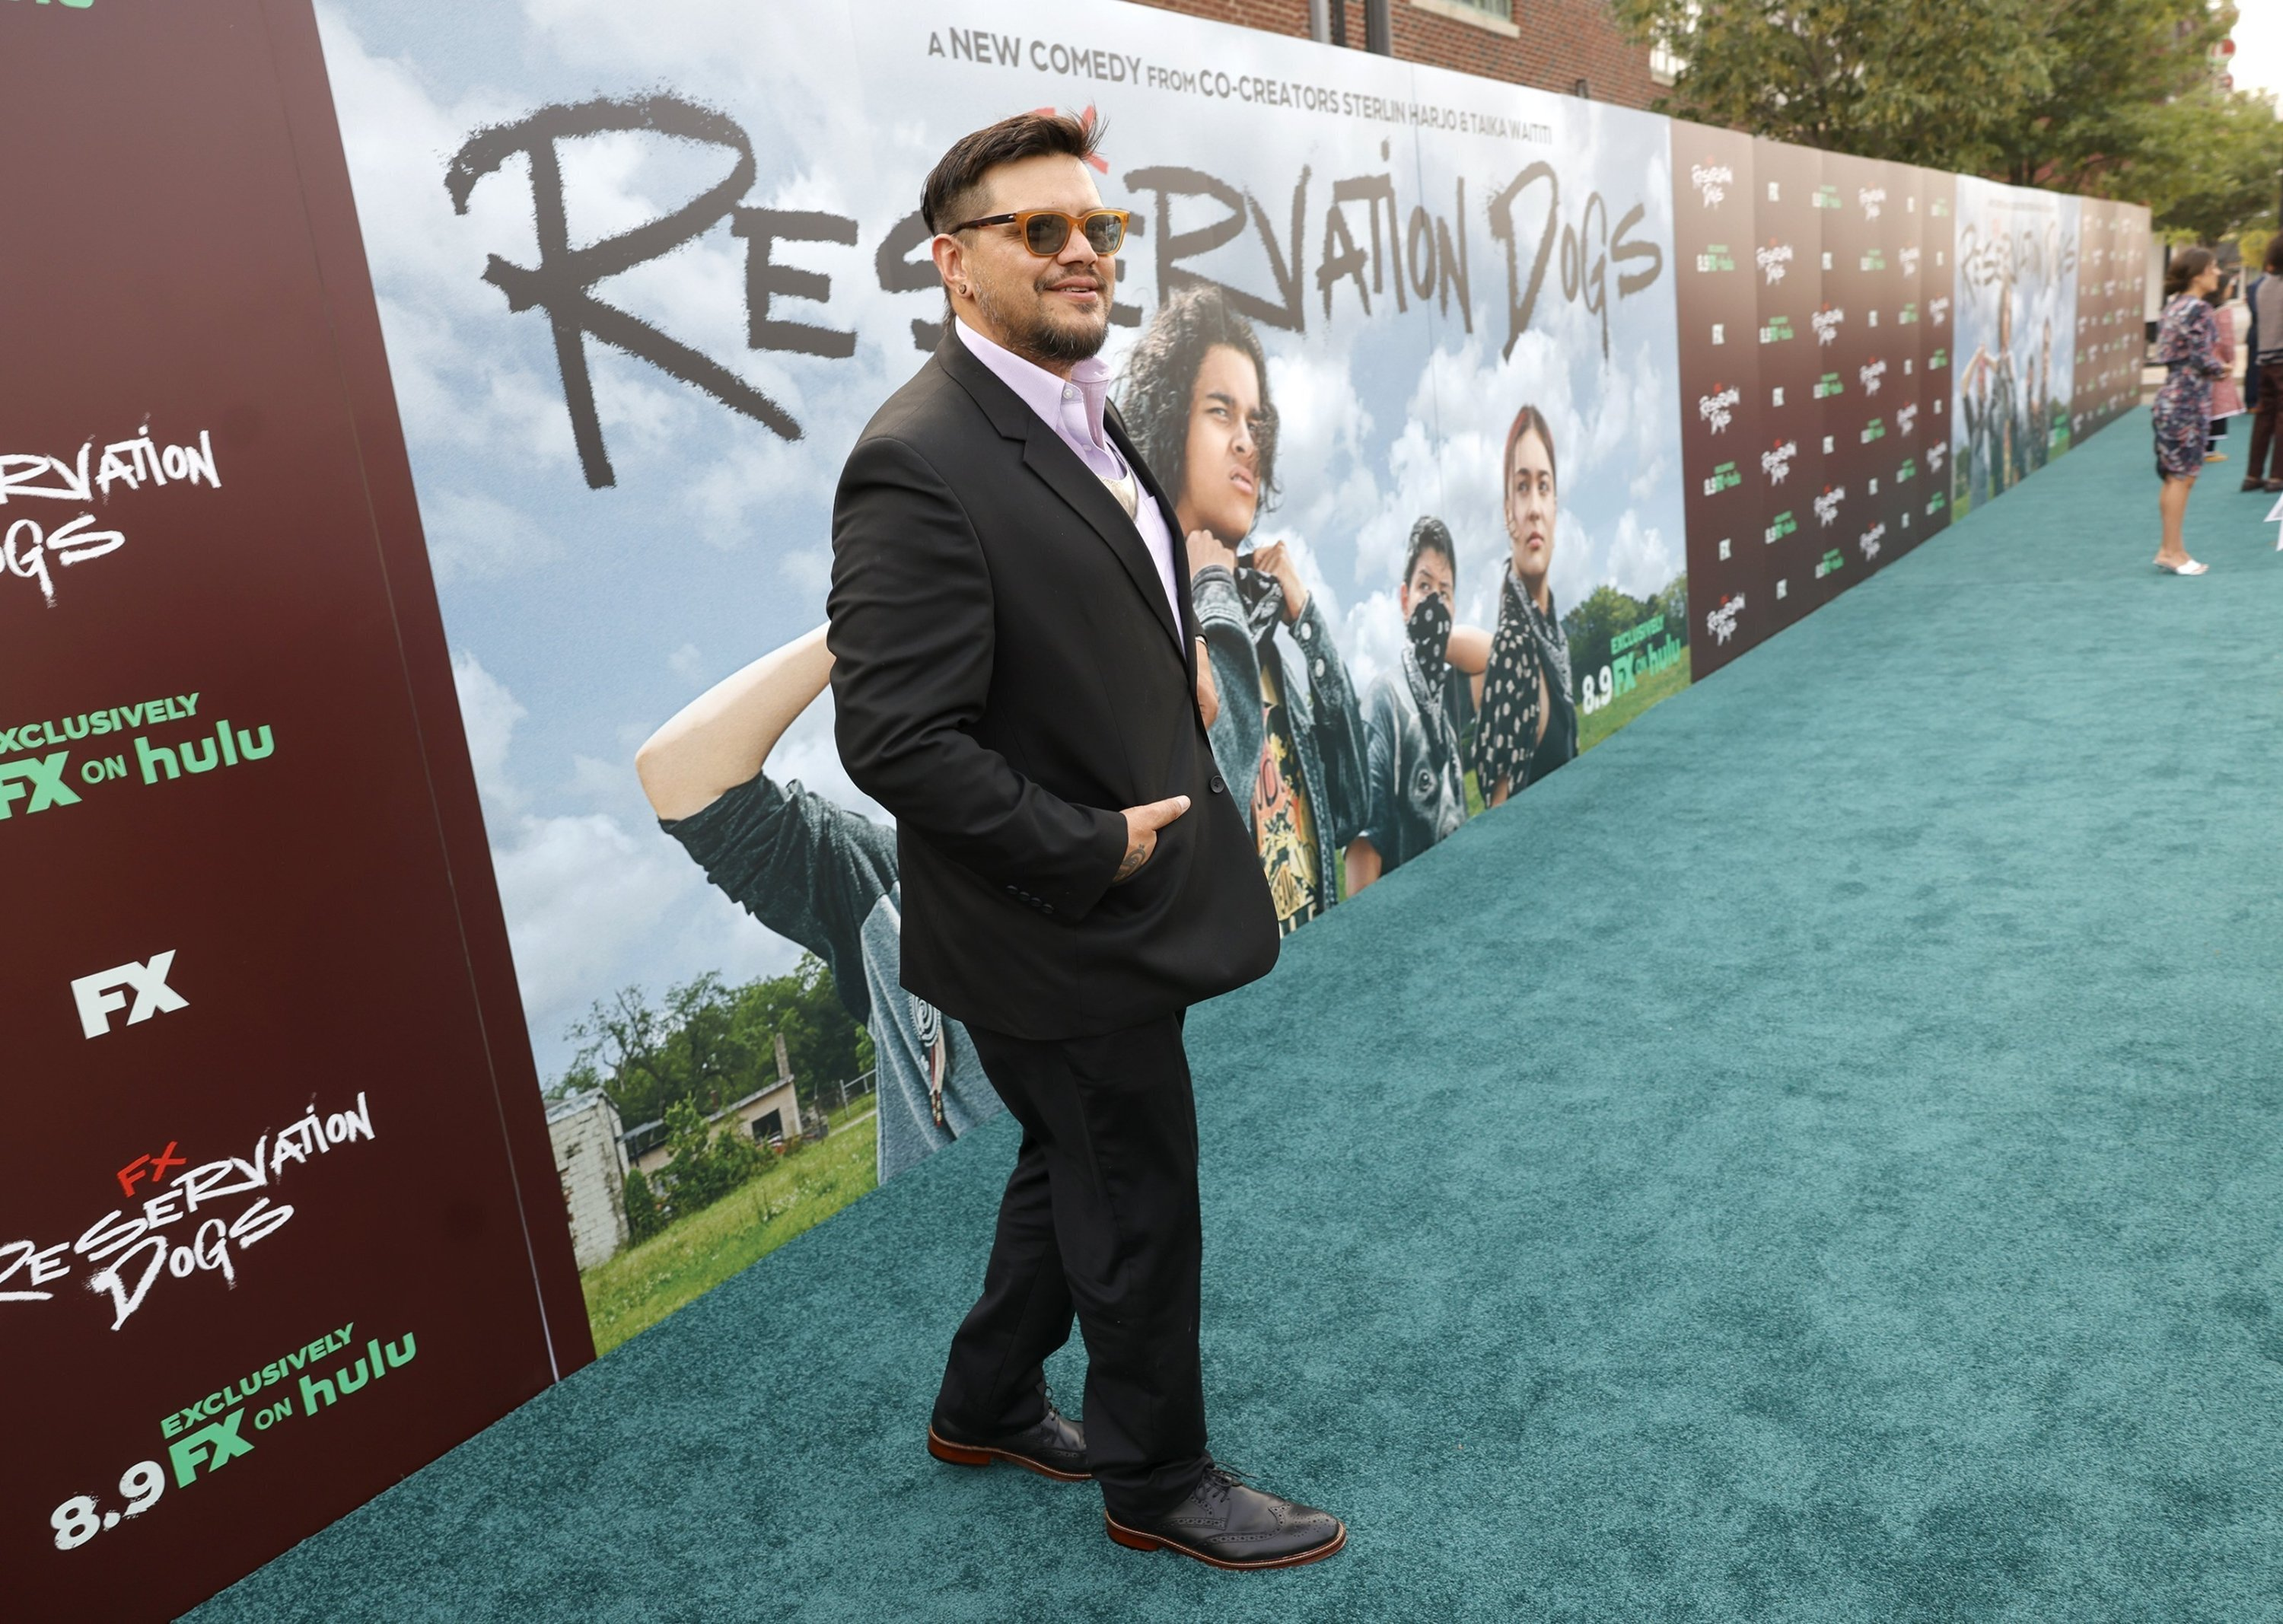 """Filmmaker Sterlin Harjo speaks to a reporter, for the premier of FX's """"Reservation Dogs,"""" a new series created by Harjo and Taika Waititi, outside the Circle Cinema in Tulsa, Oklahoma, U.S., Aug. 2, 2021. (AP Photo)"""